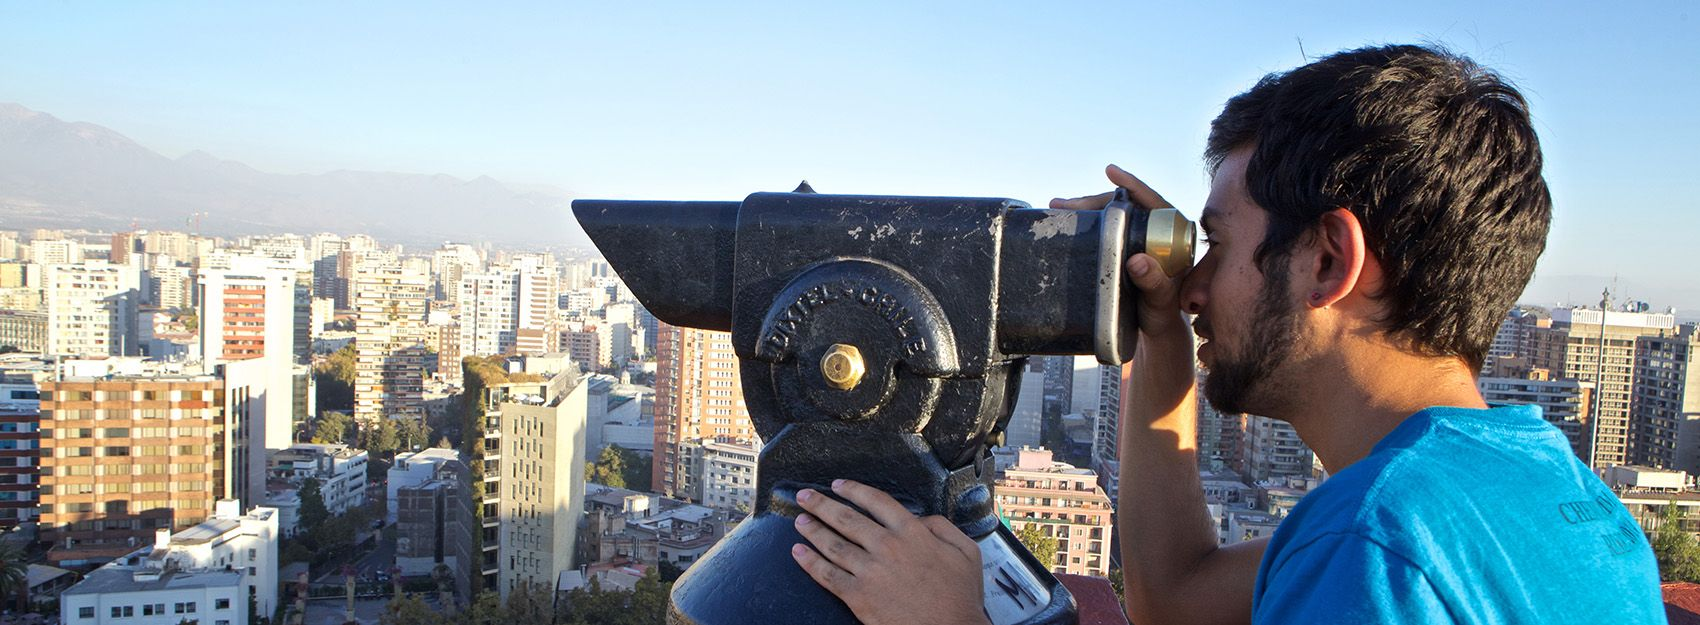 Santiago study abroad student looks through a tower viewer at an overlook above the city